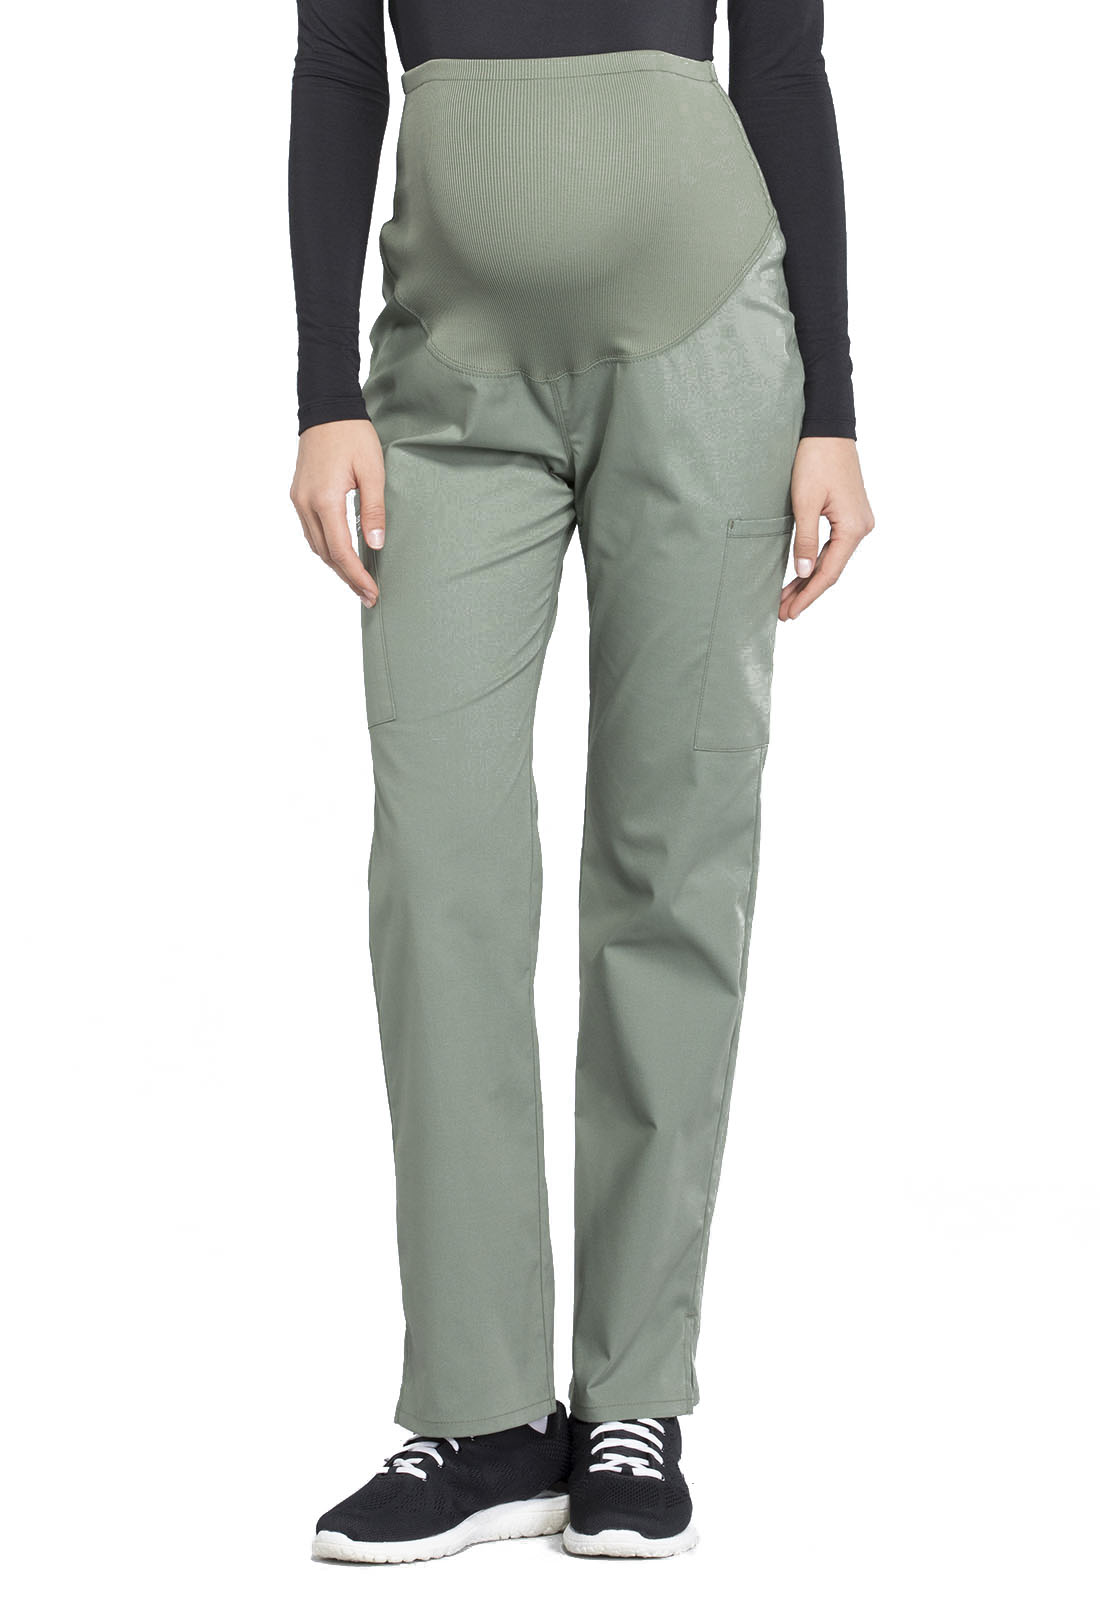 aa748333293 WW Professionals Maternity Straight Leg Pant in Olive WW220-OLV from ...